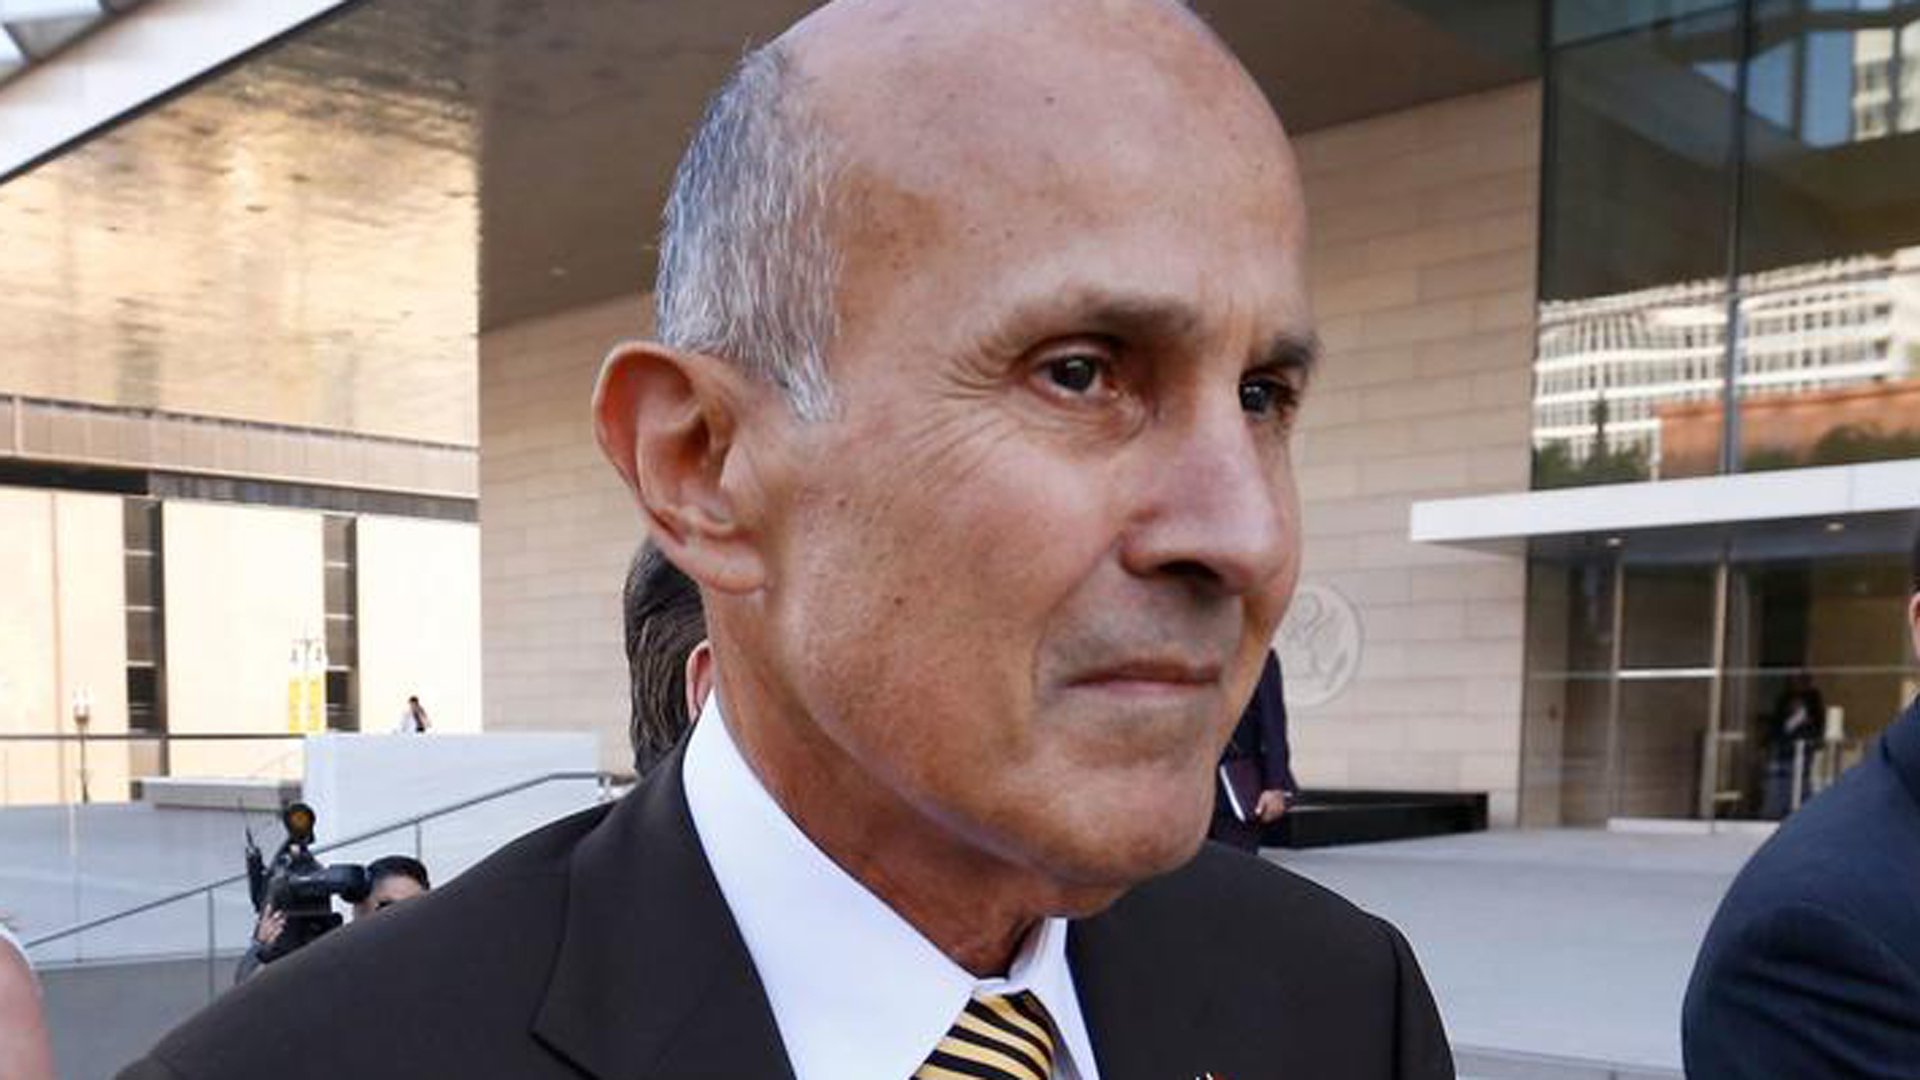 Ex-Los Angeles County Sheriff Lee Baca is seen outside the L.A. federal courthouse after he was convicted of obstruction of justice and other charges. A judge denied Baca's request to be free on bond while he appeals his conviction. (Al Seib / Los Angeles Times)